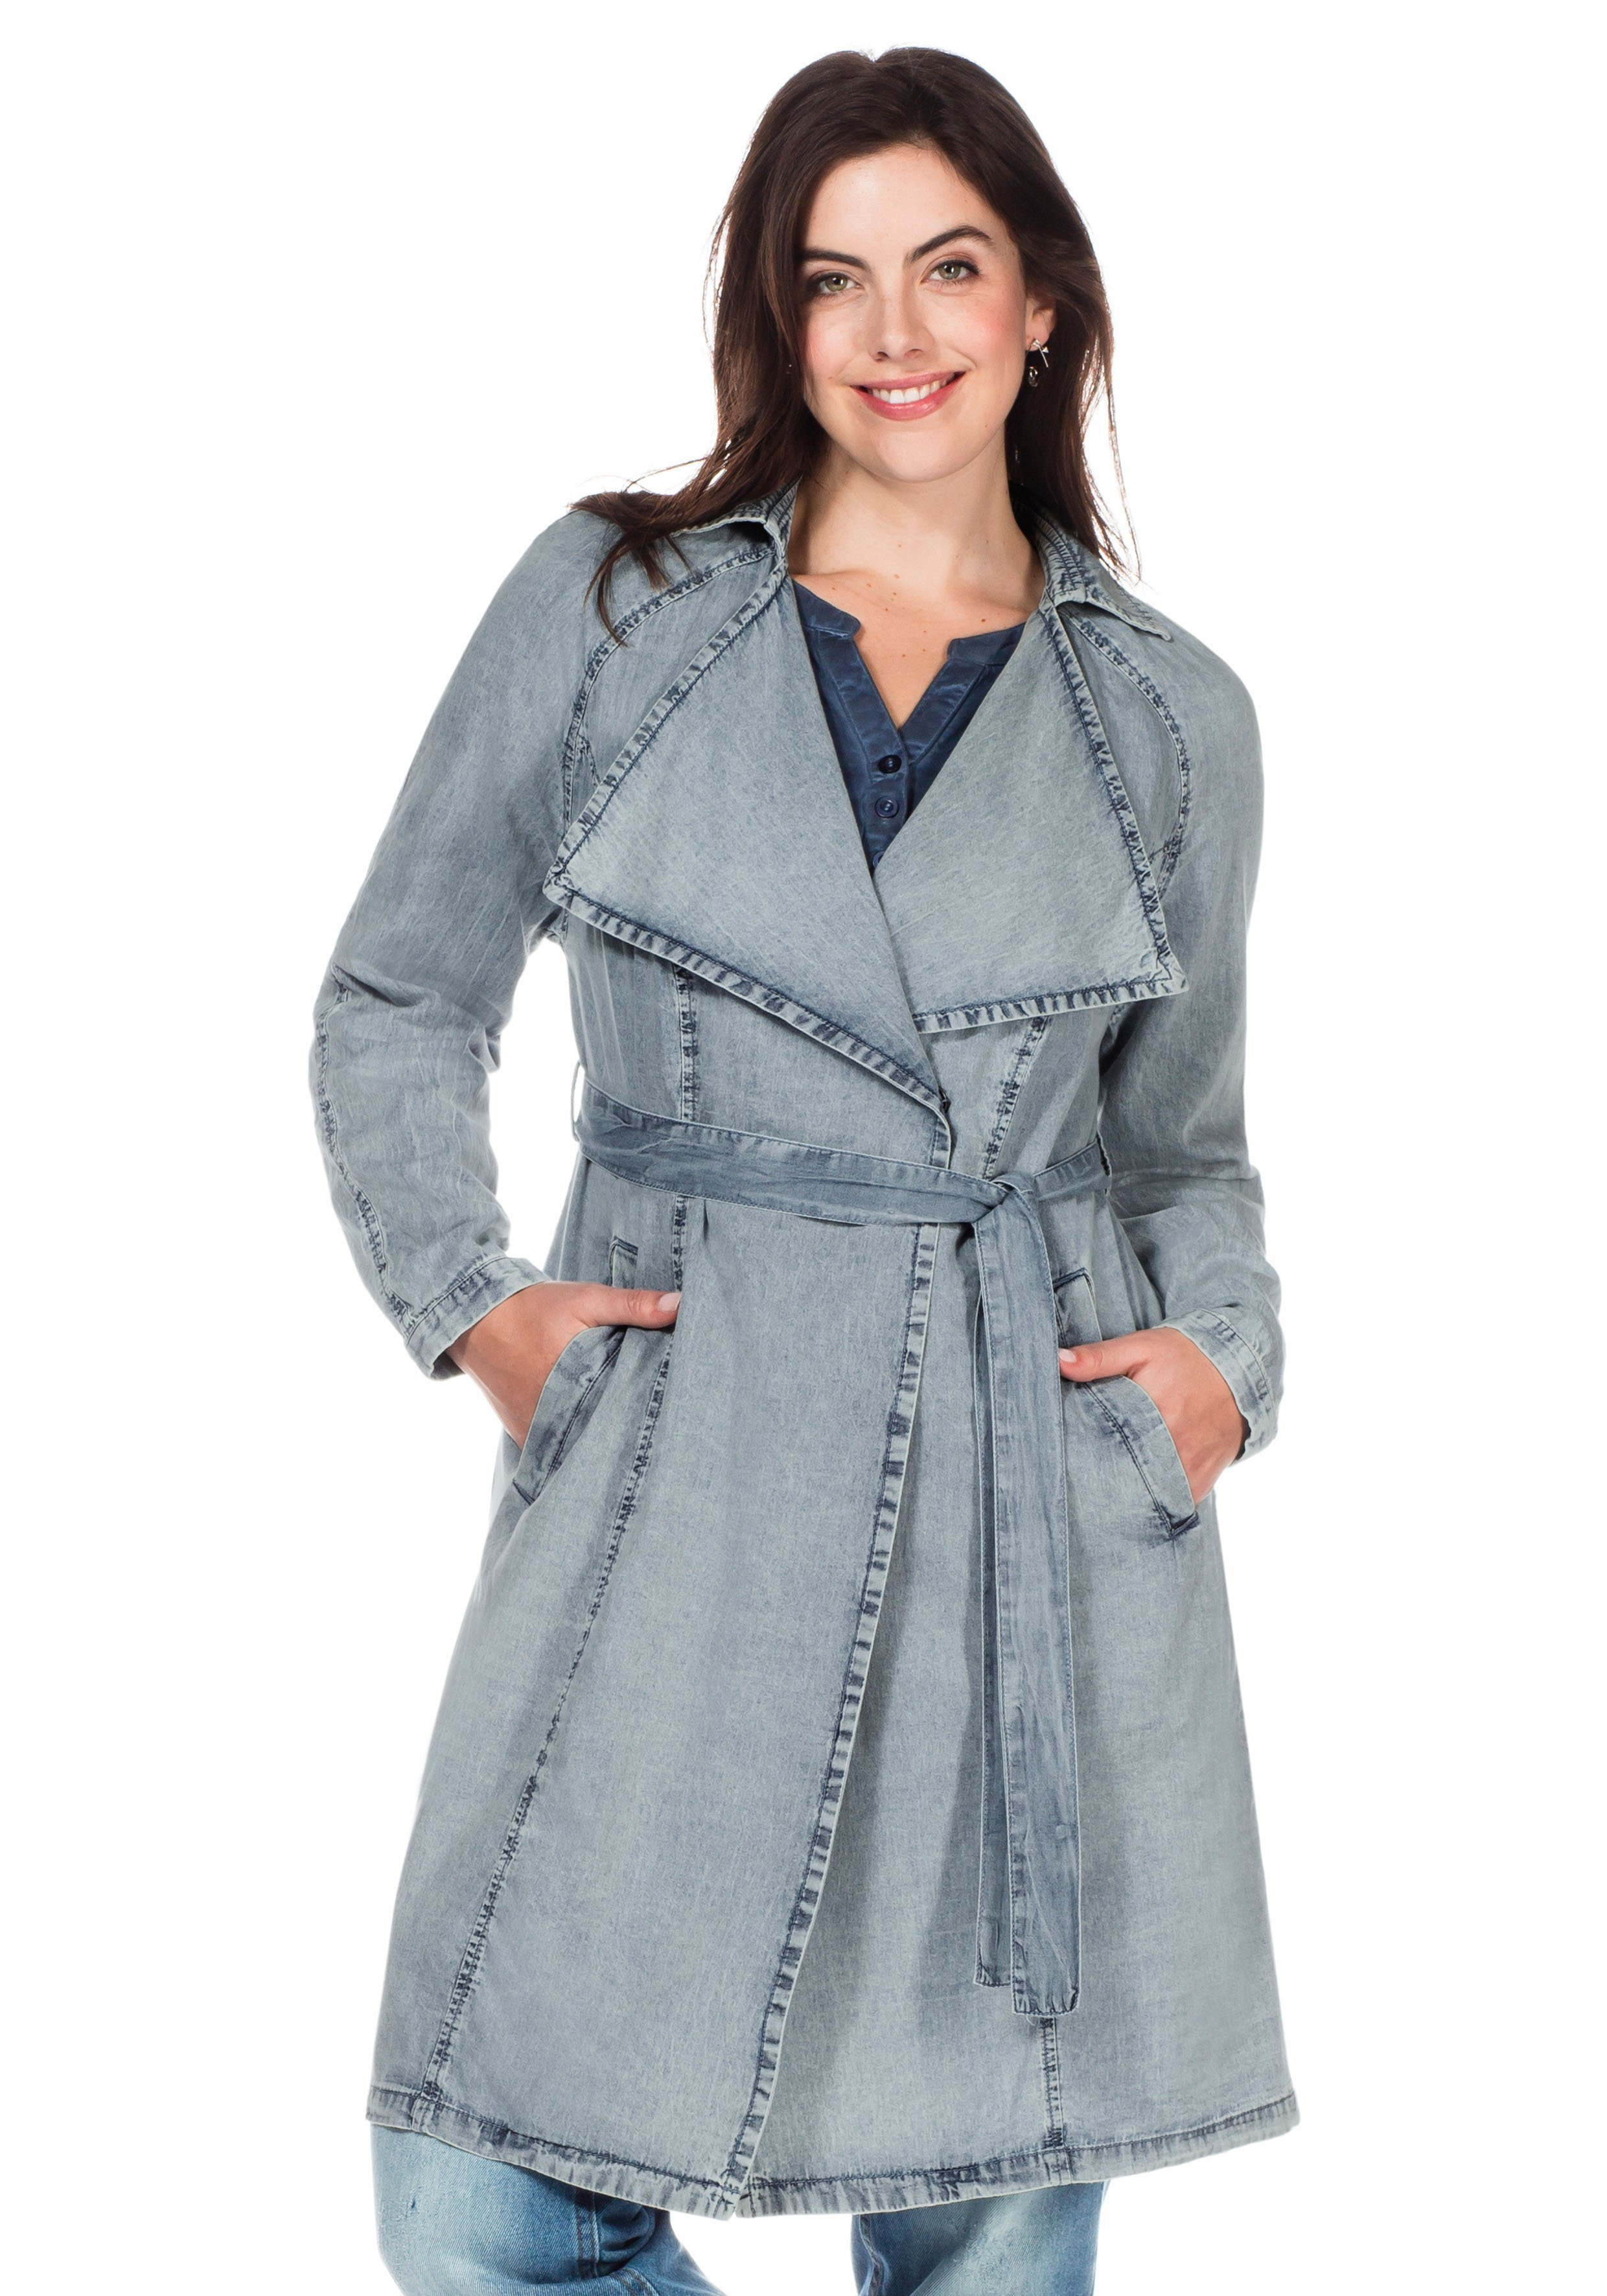 sheego Denim Trenchcoat Individuelle Waschung | Bekleidung > Mäntel > Trenchcoats | sheego Denim